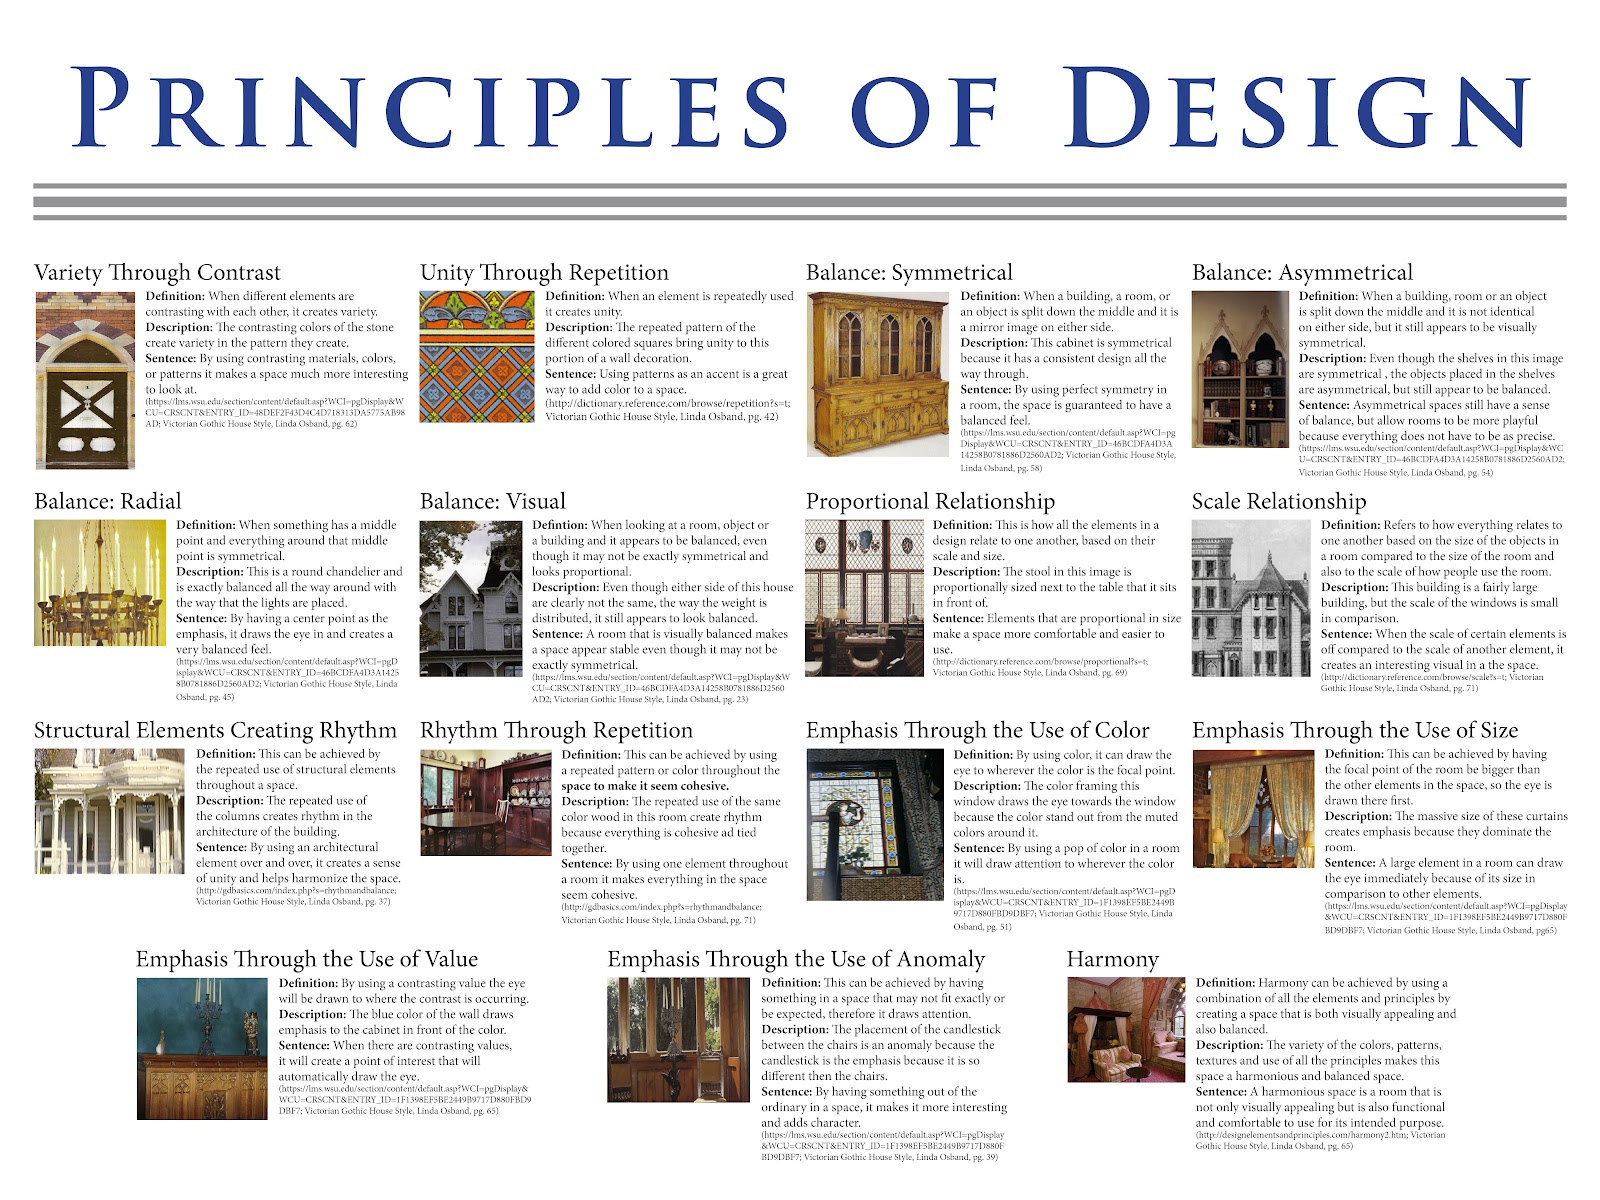 Design And Principles : Principles of design visual communication